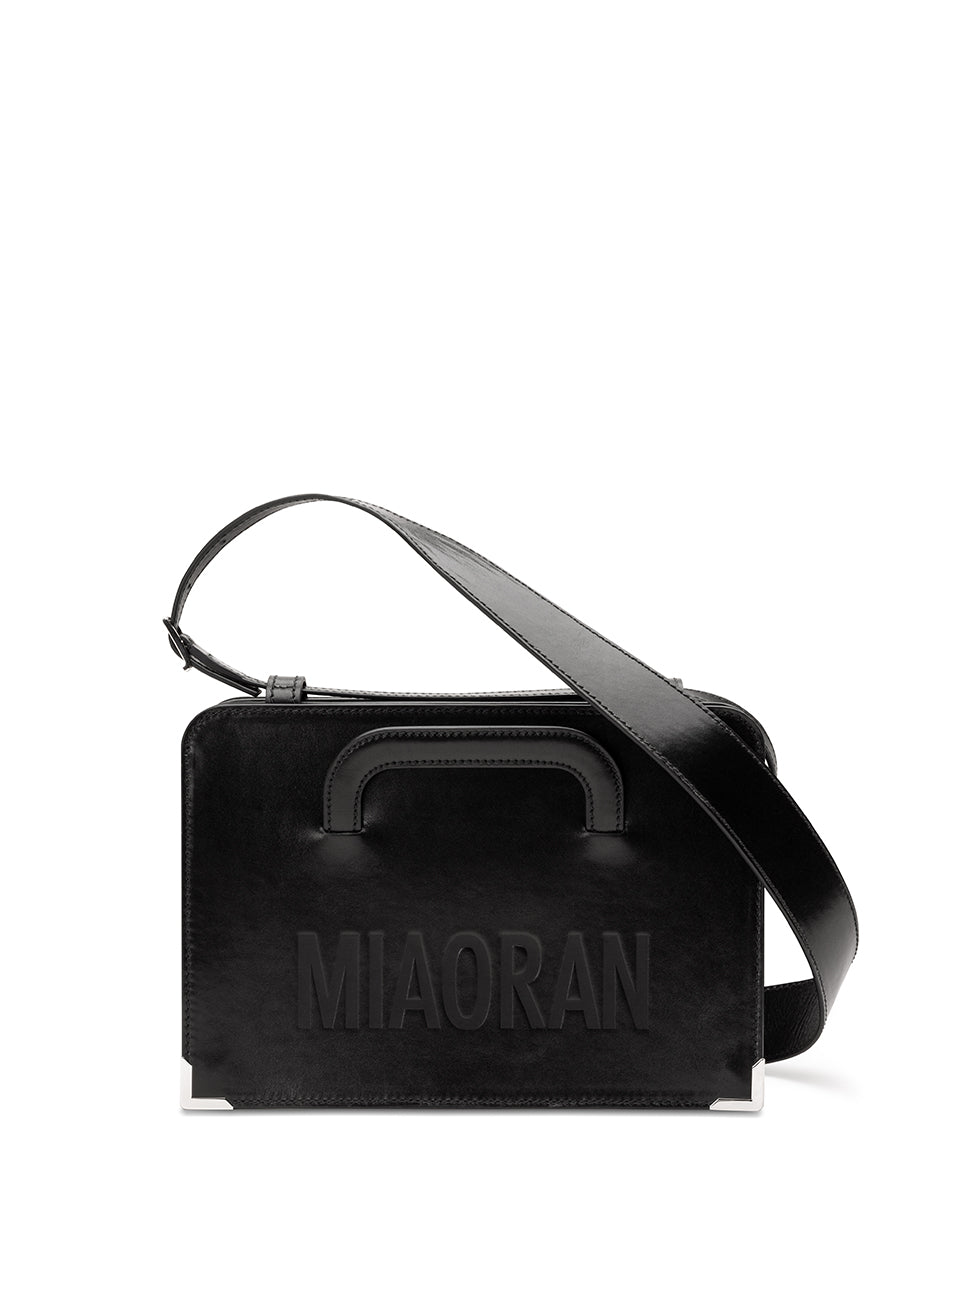 RAN BAG BLACK LEATHER